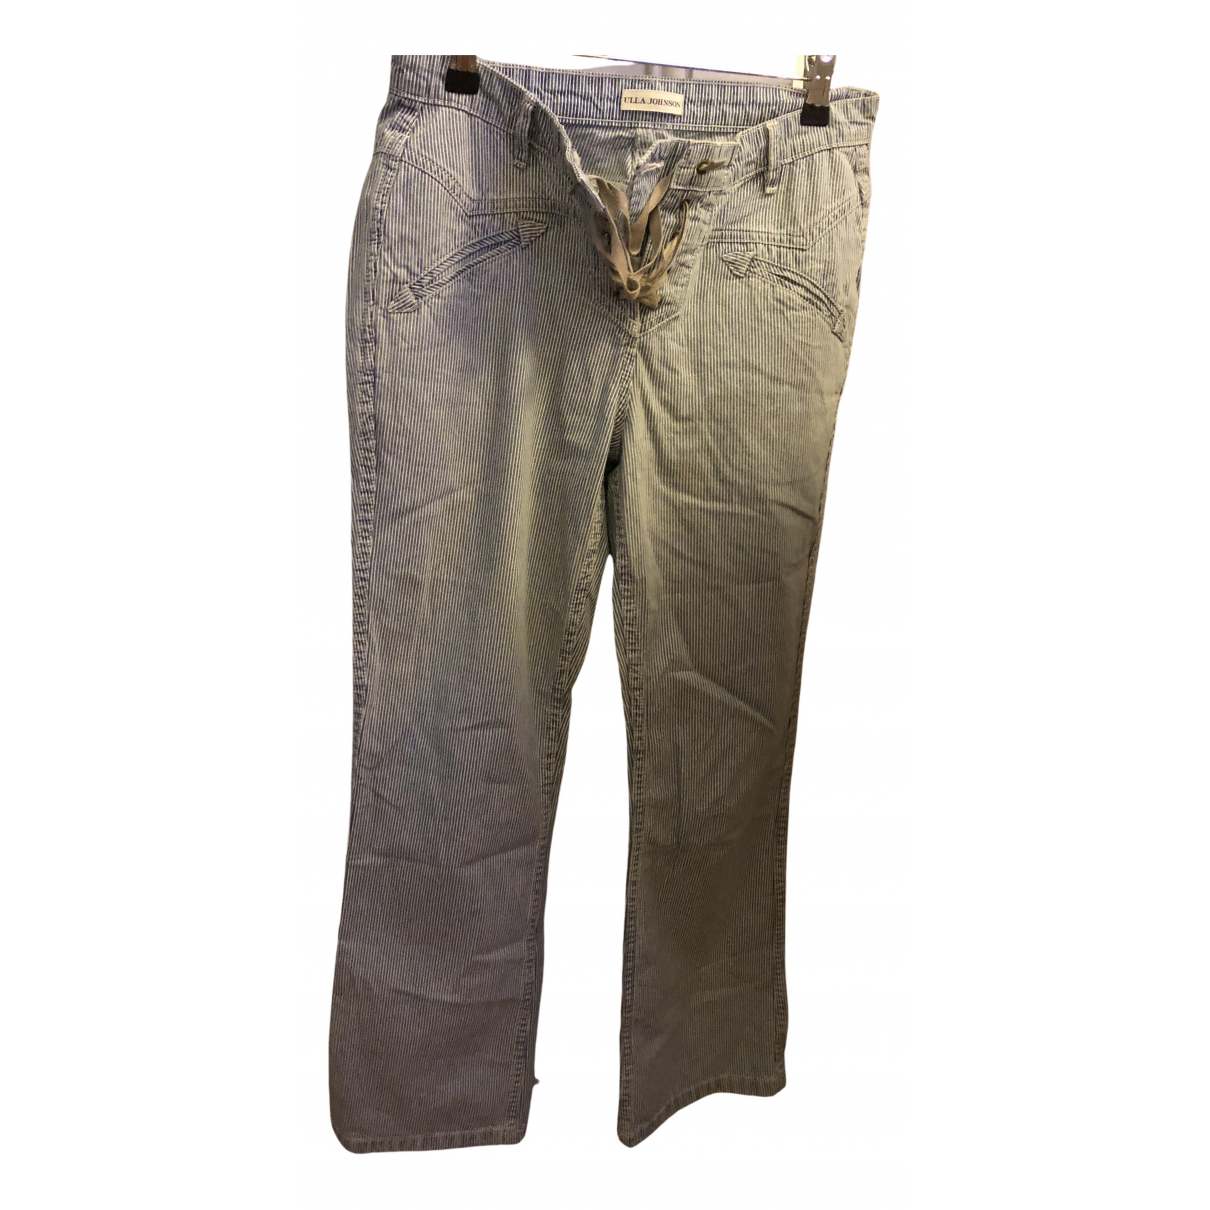 Ulla Johnson N Blue Cotton Trousers for Women 4 US